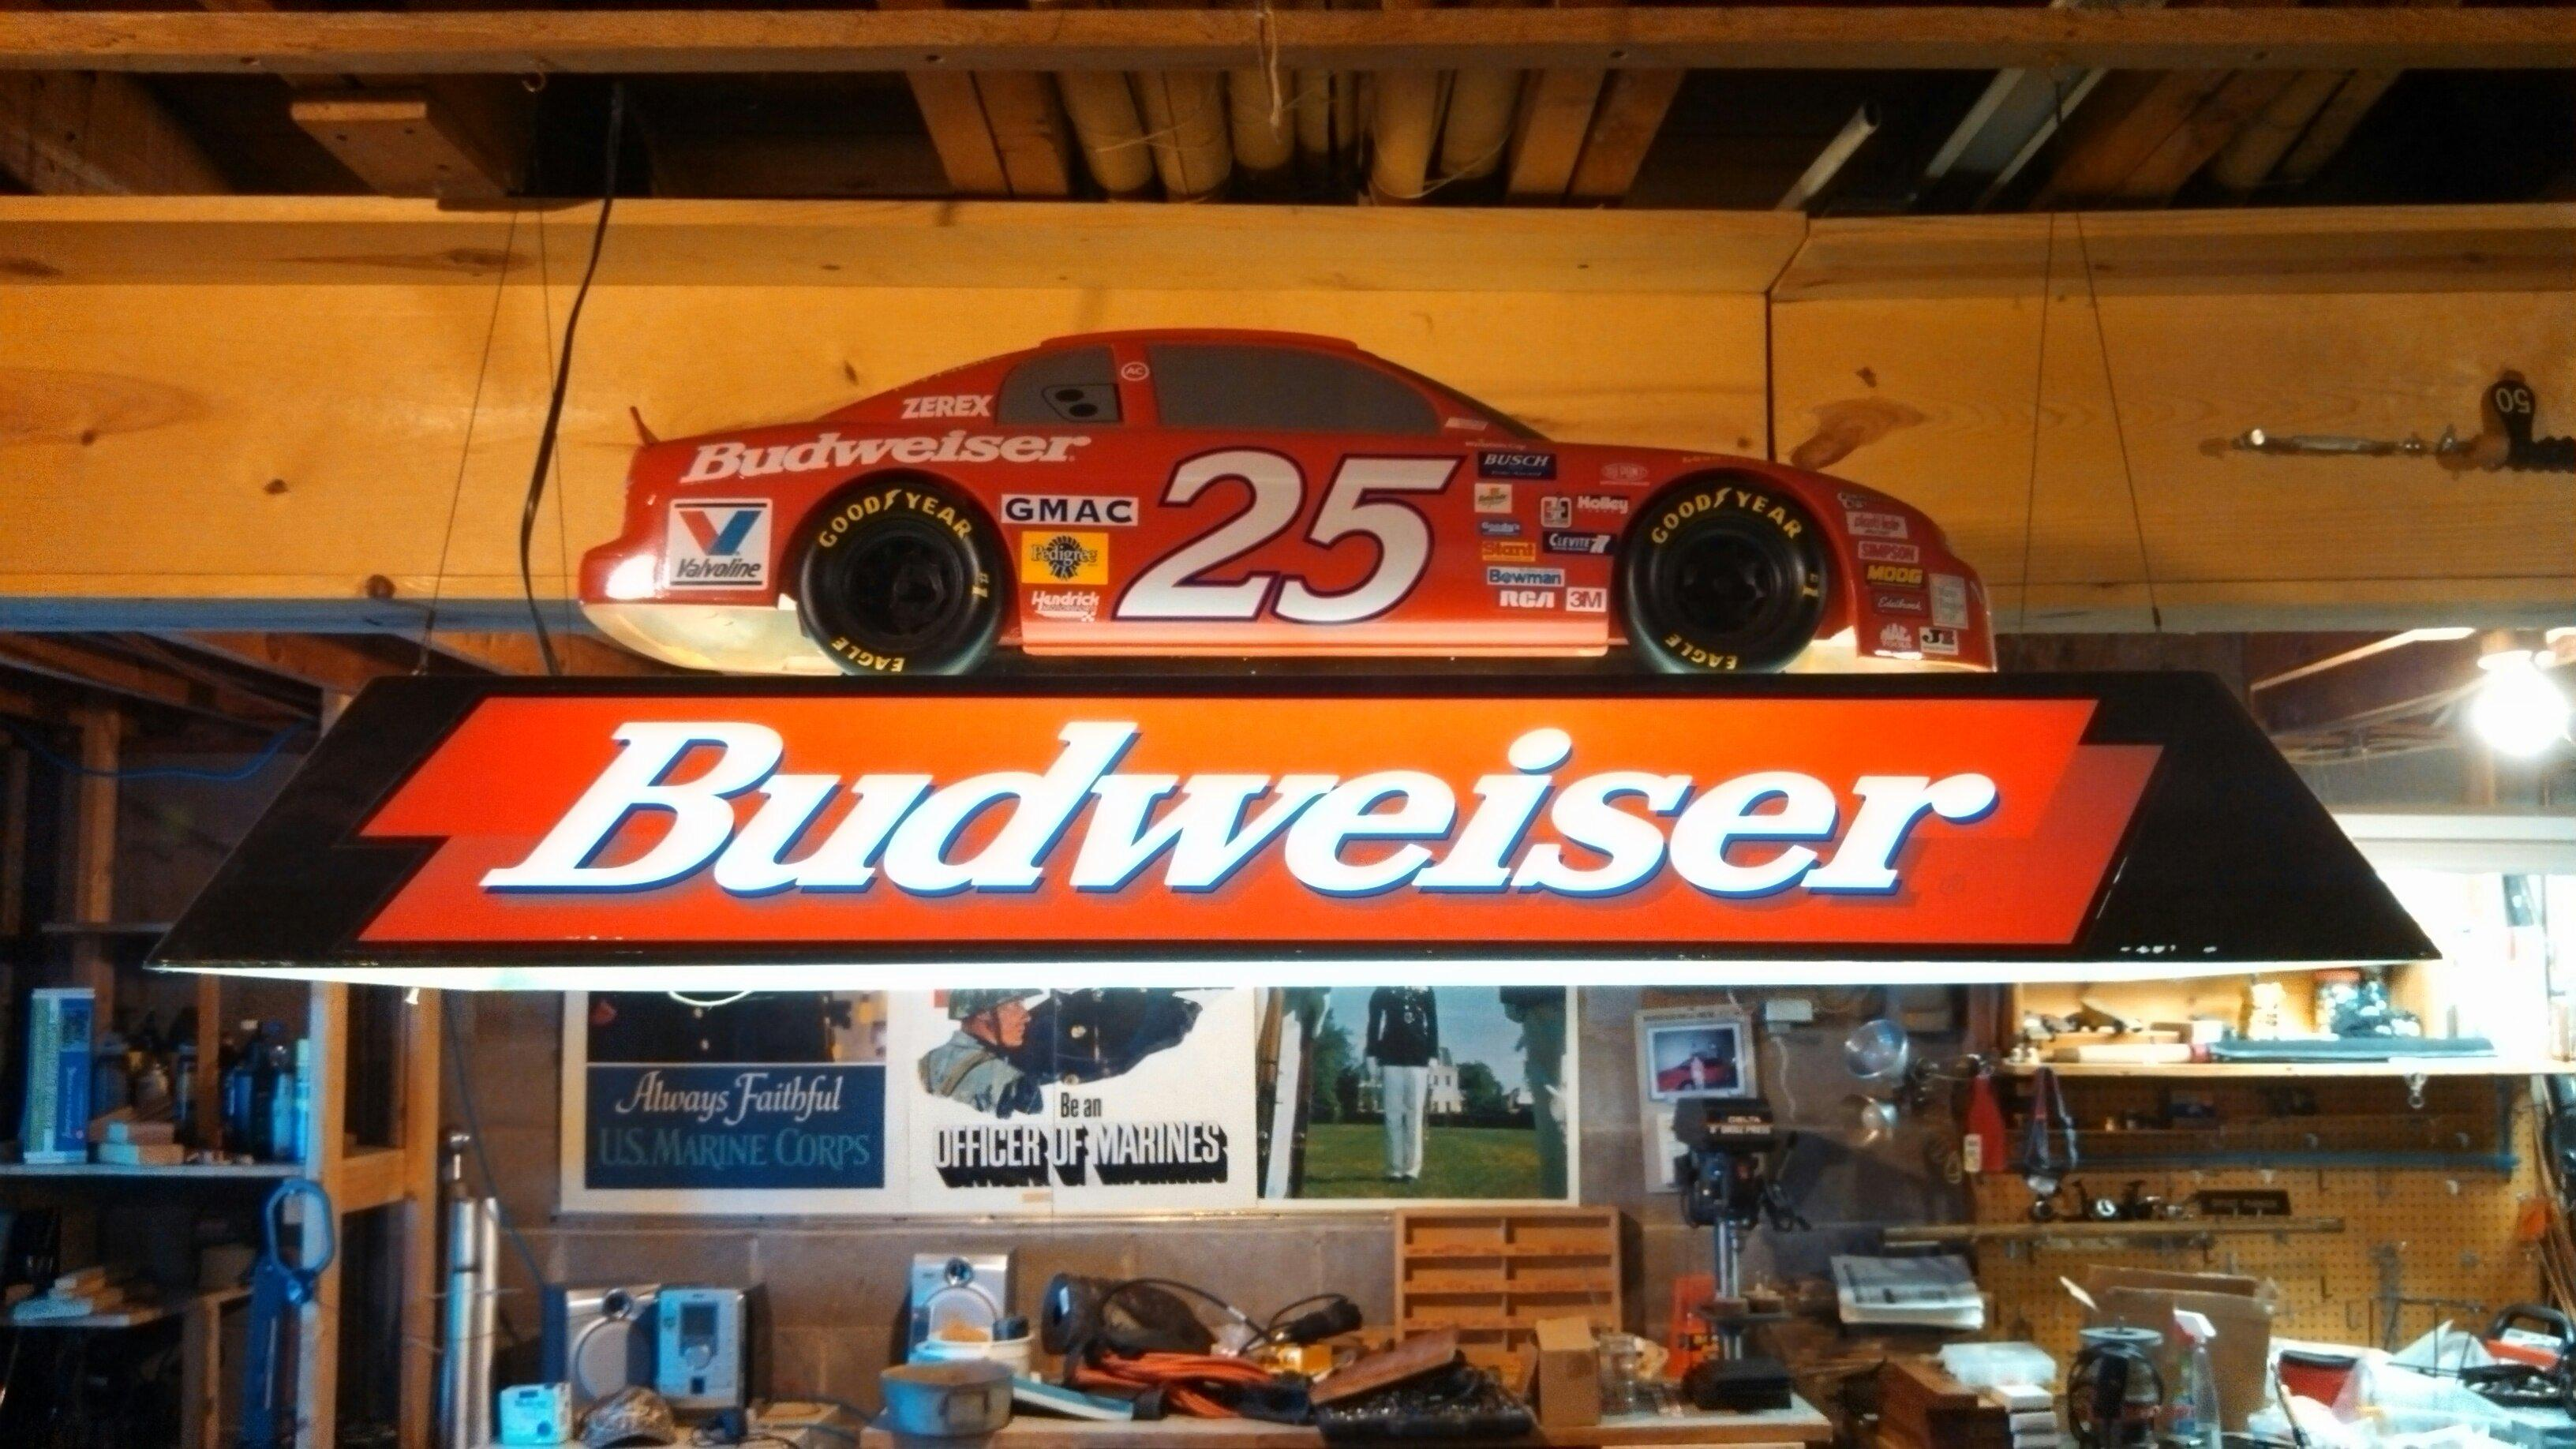 Budweiser #25 Pool Table Light